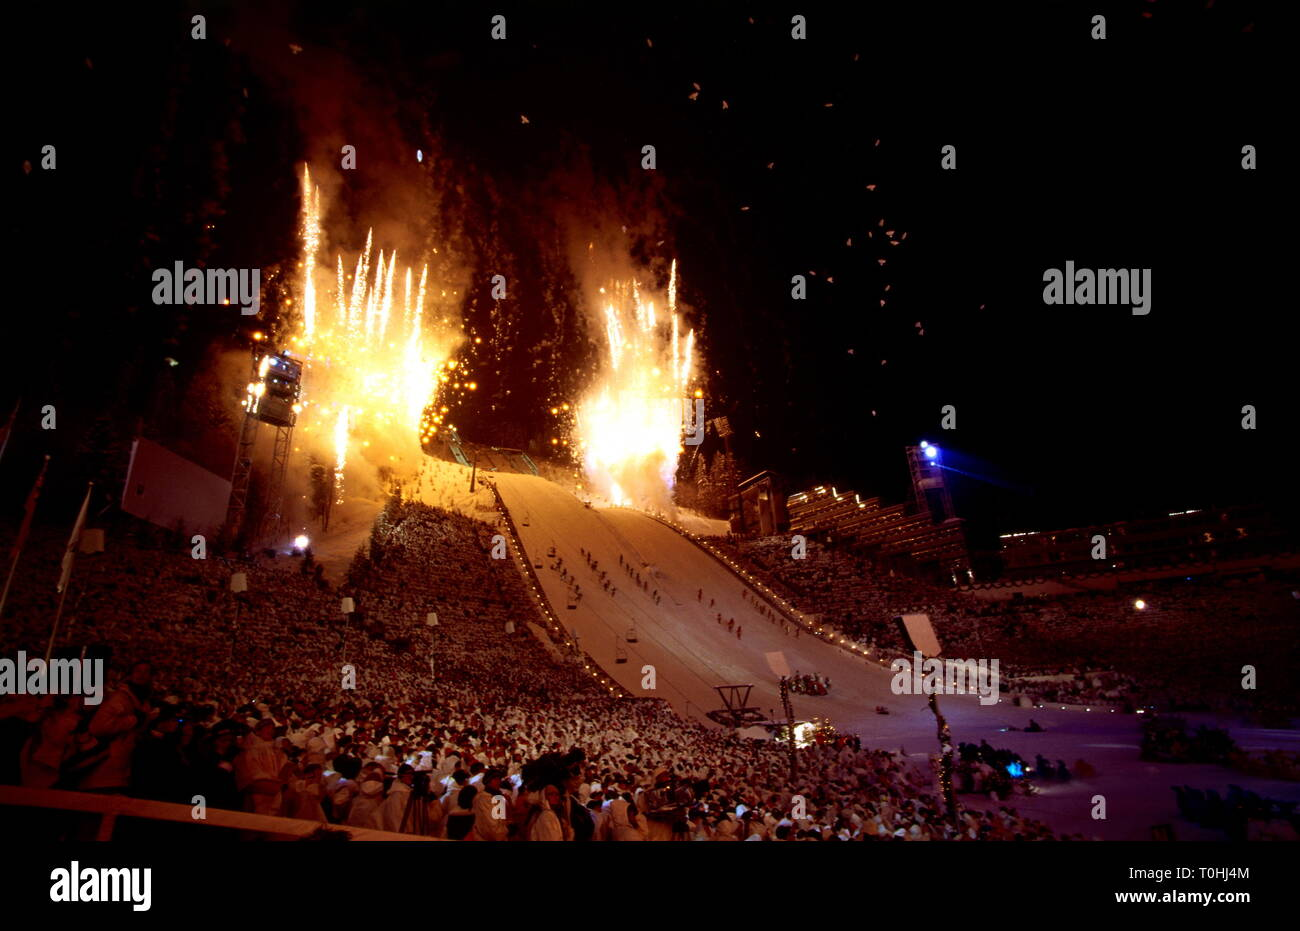 sports, XVII. Olympic winter games, Lillehammer, opening ceremony, 1994, Additional-Rights-Clearance-Info-Not-Available - Stock Image